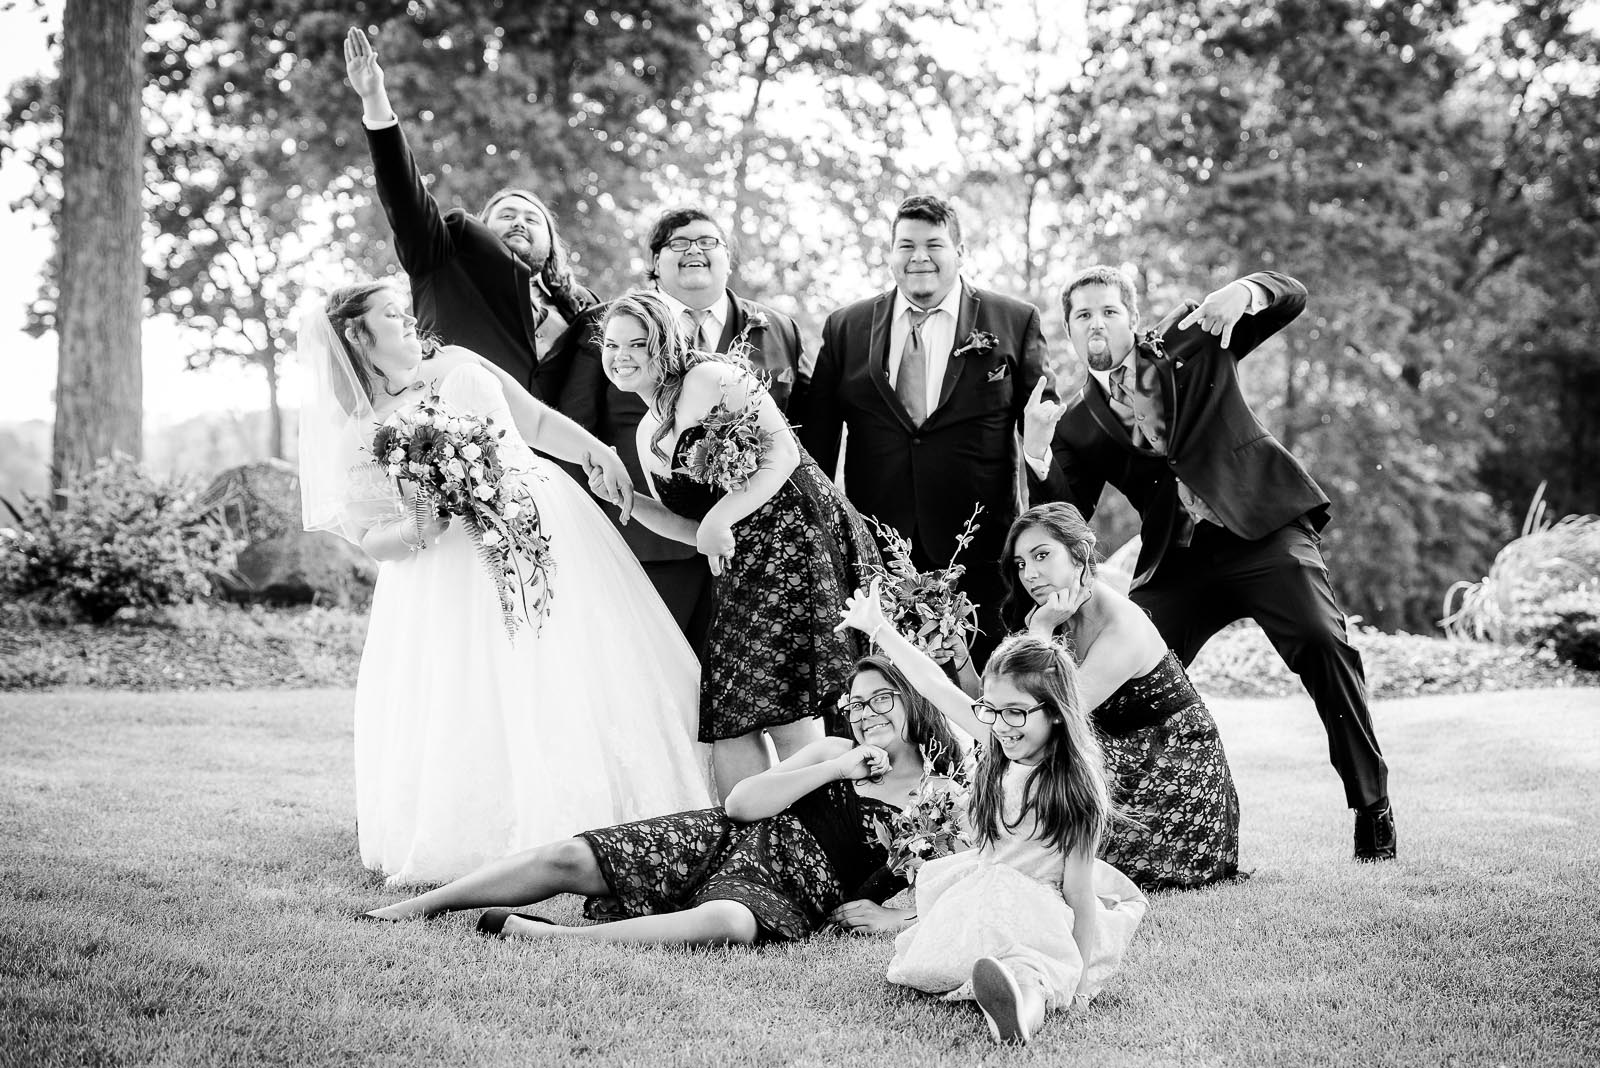 Eric_and_Christy_Photography_Blog_Shelby_Dony_Wedding-17